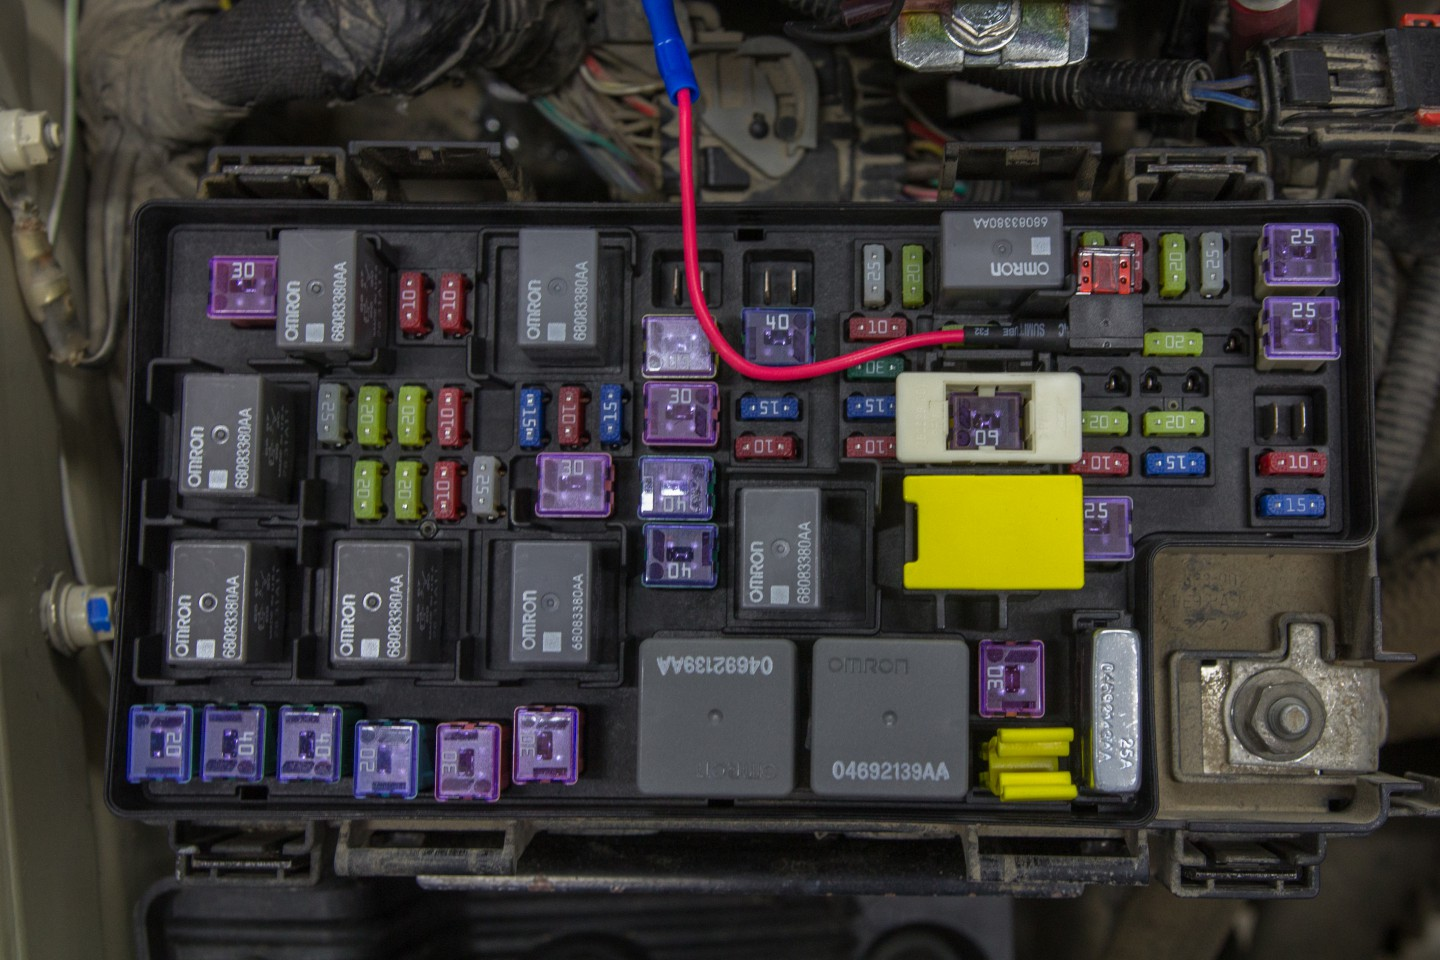 jk wrangler dual batteries trigger wire in fuse block 1440x960 2016 jeep jk fuse box diagram 1999 jeep wrangler fuse box diagram 2012 jeep wrangler fuse box diagram at n-0.co